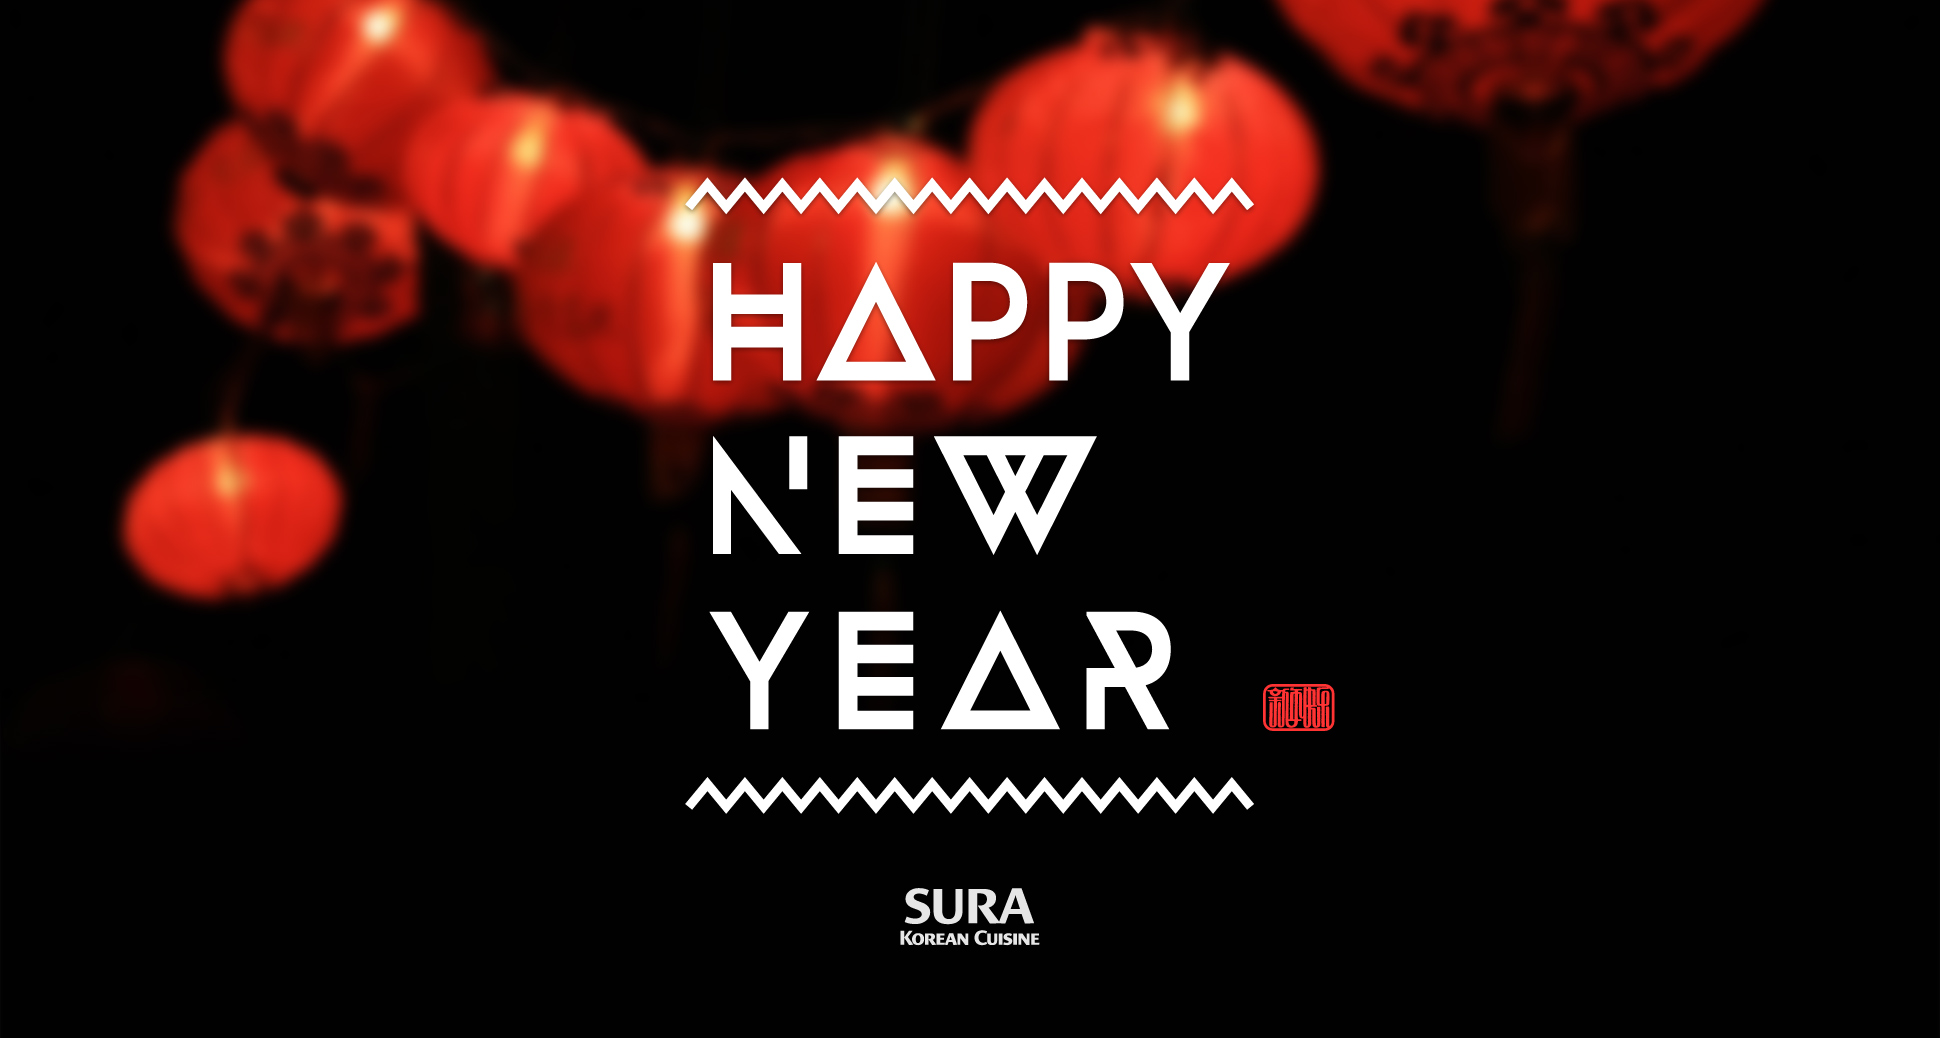 Sura Korean Royal Cuisine Restaurant News Happy Chinese New Year